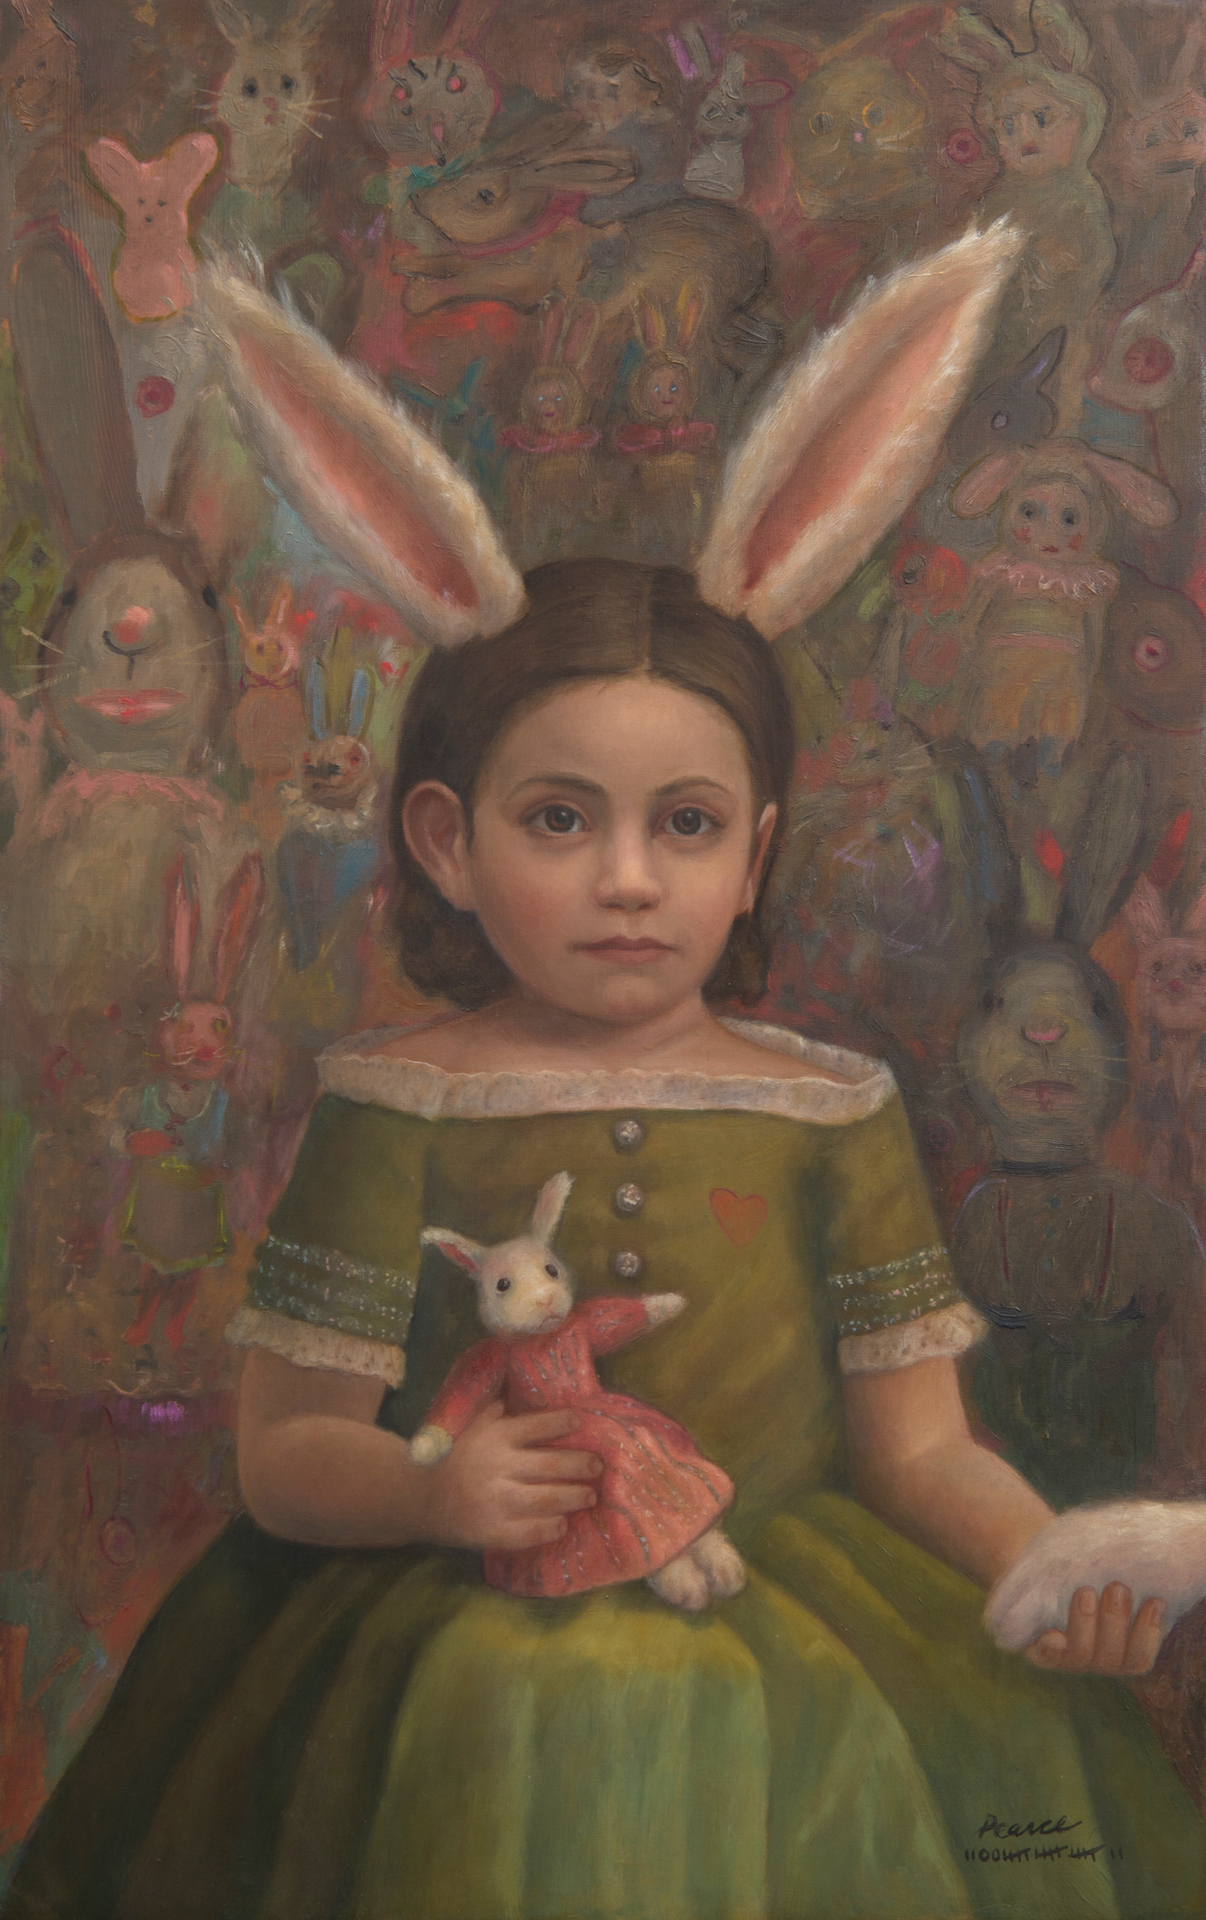 """""""Plethora"""" 15 inches x 24 inches, 2017 Oil on Linen SOLD  Patsy was her favorite. They were going to tear her from limb to limb. Equipped, with accessories, she entered the backyard operation that was horribly out of control. She hypnotized the others, and arranged them by color. One reached out and offered his paw for luck."""